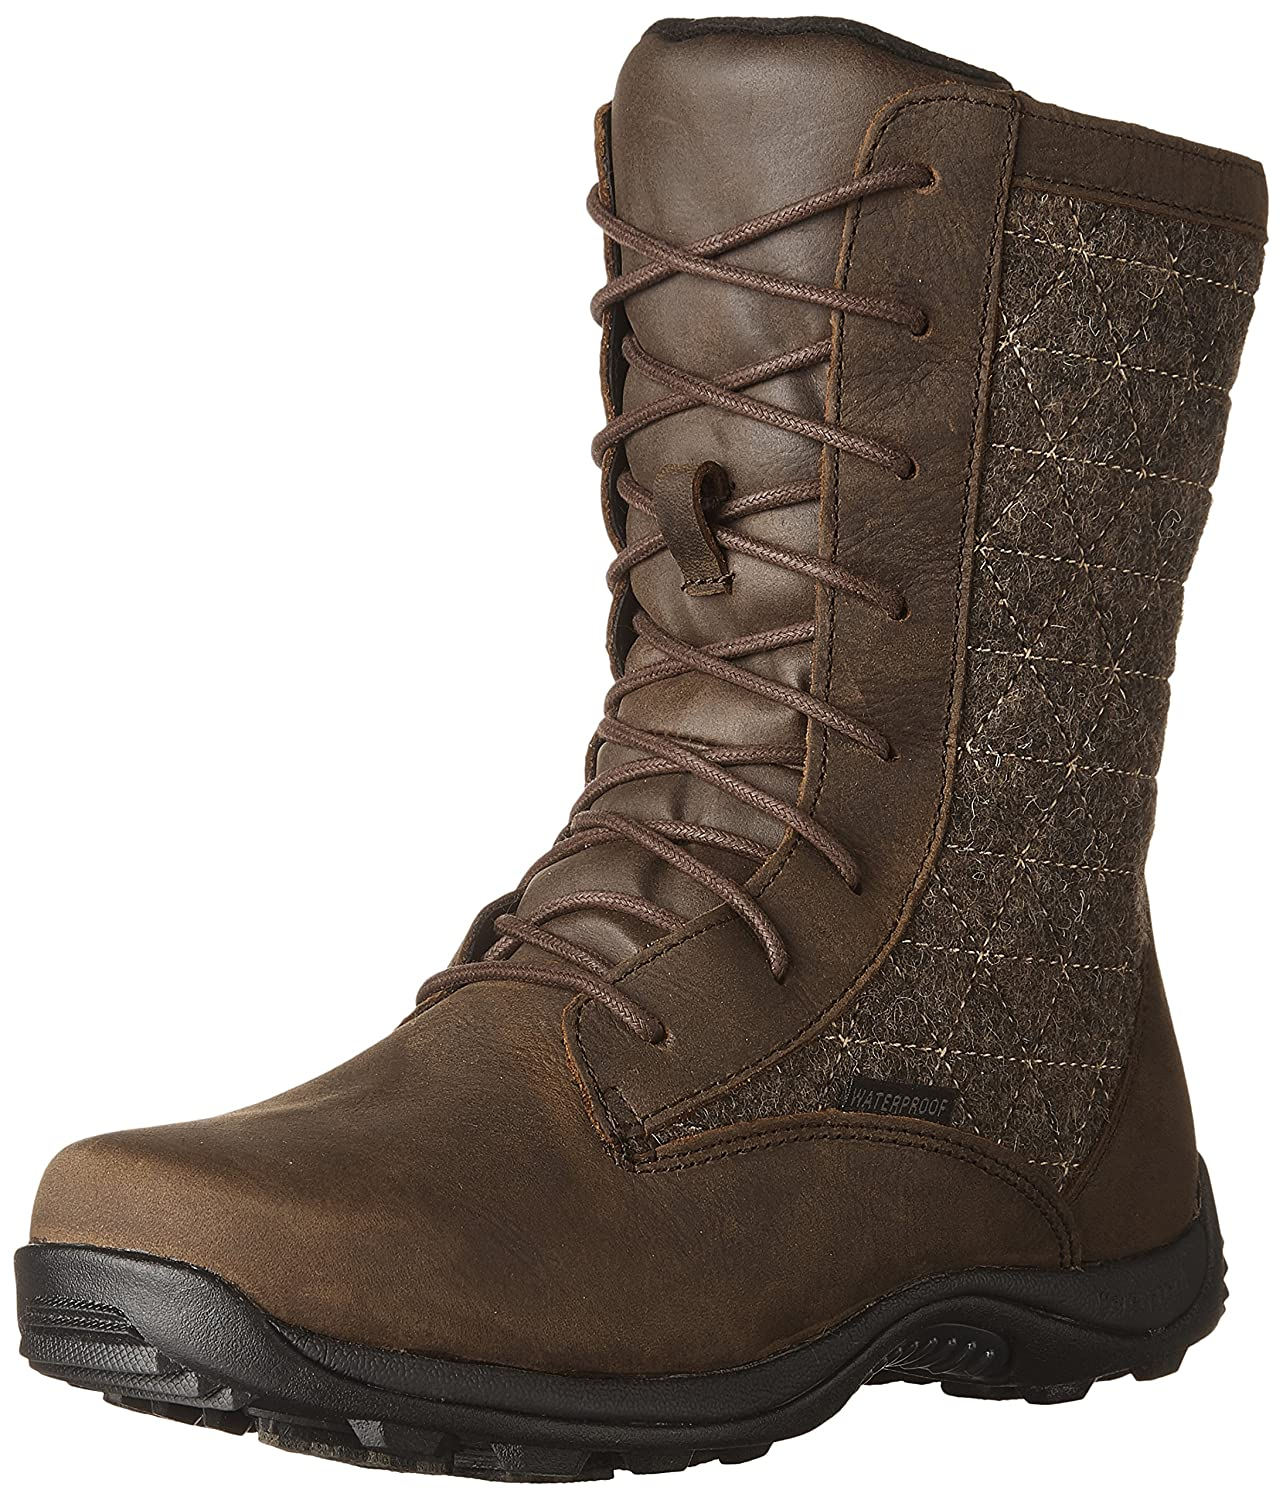 Baffin Womens Women's Alpine B01N19M6D9 11 B(M) US|Brown